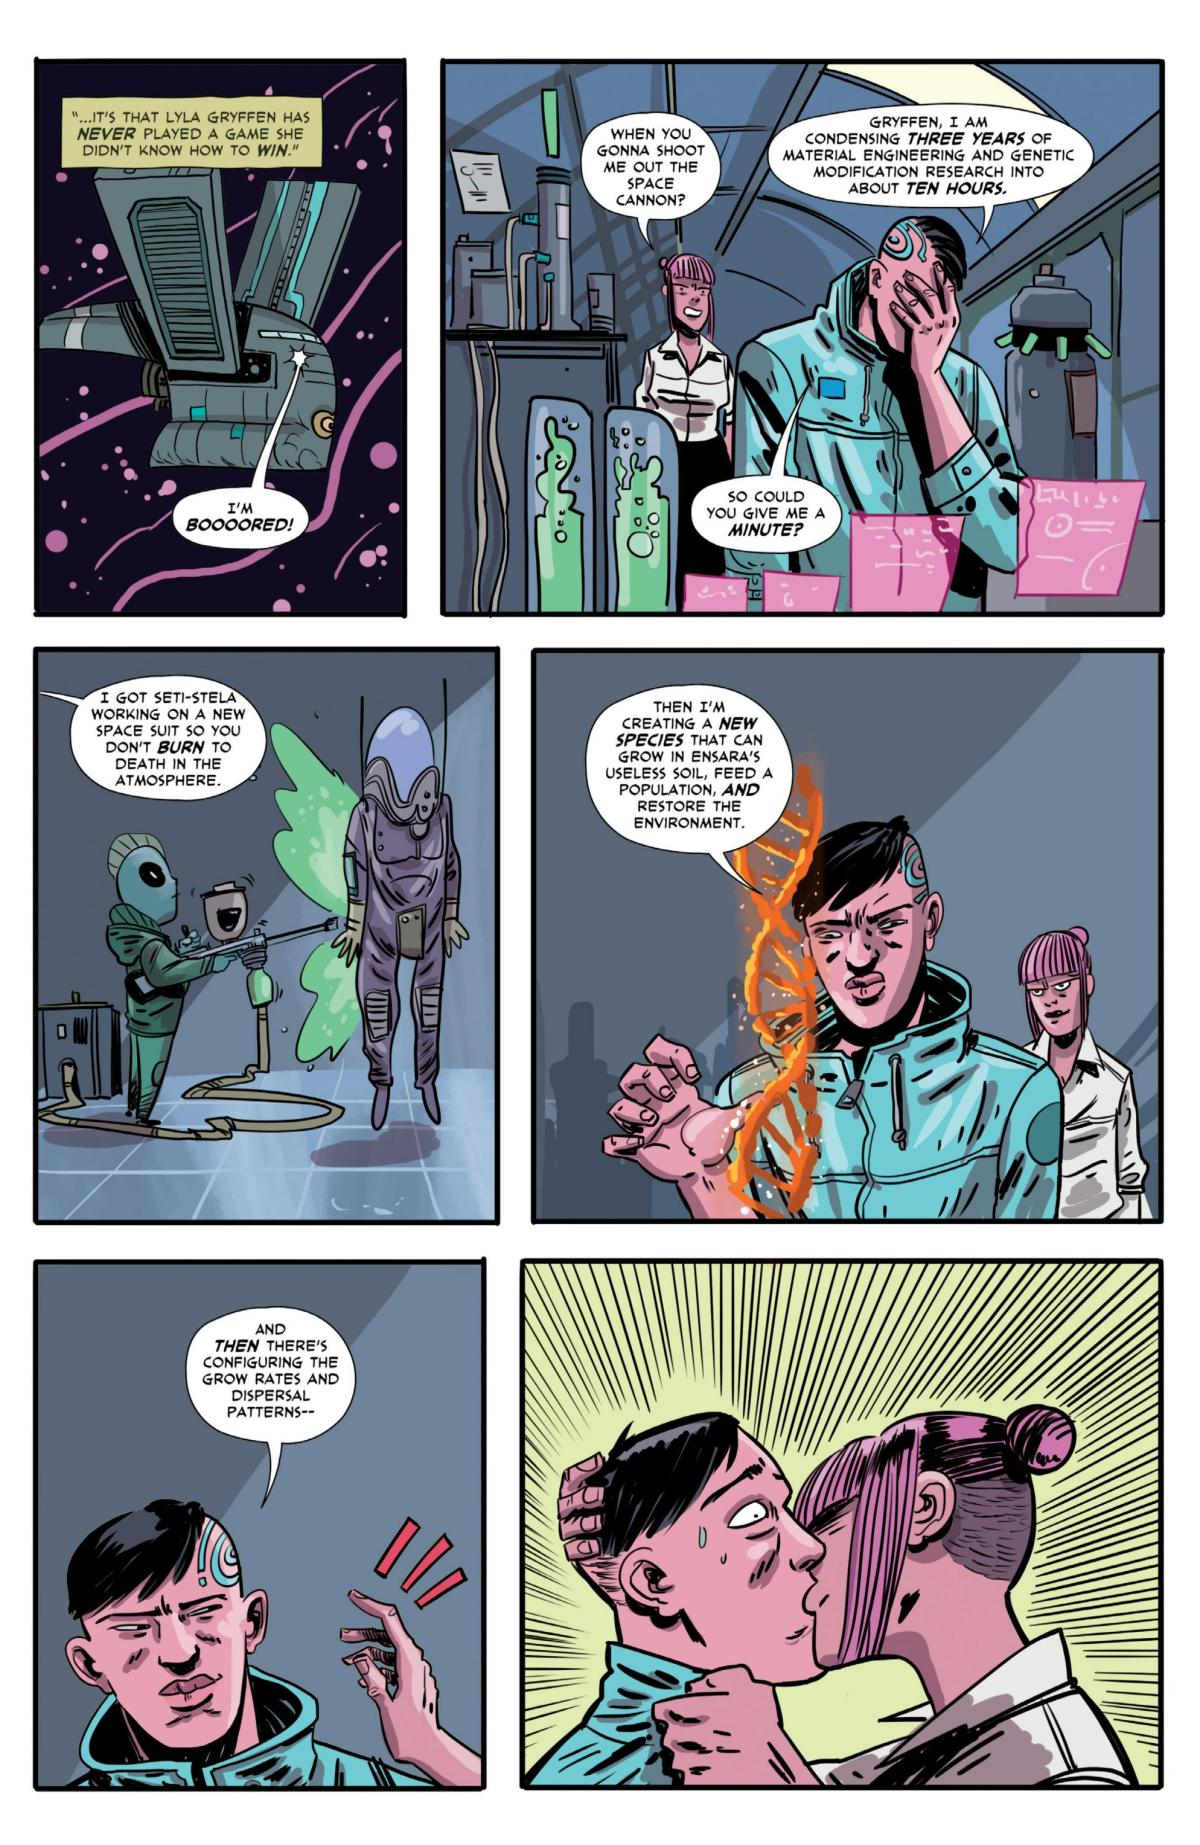 Gryffen: Galaxy's Most Wanted #5 Page 2.